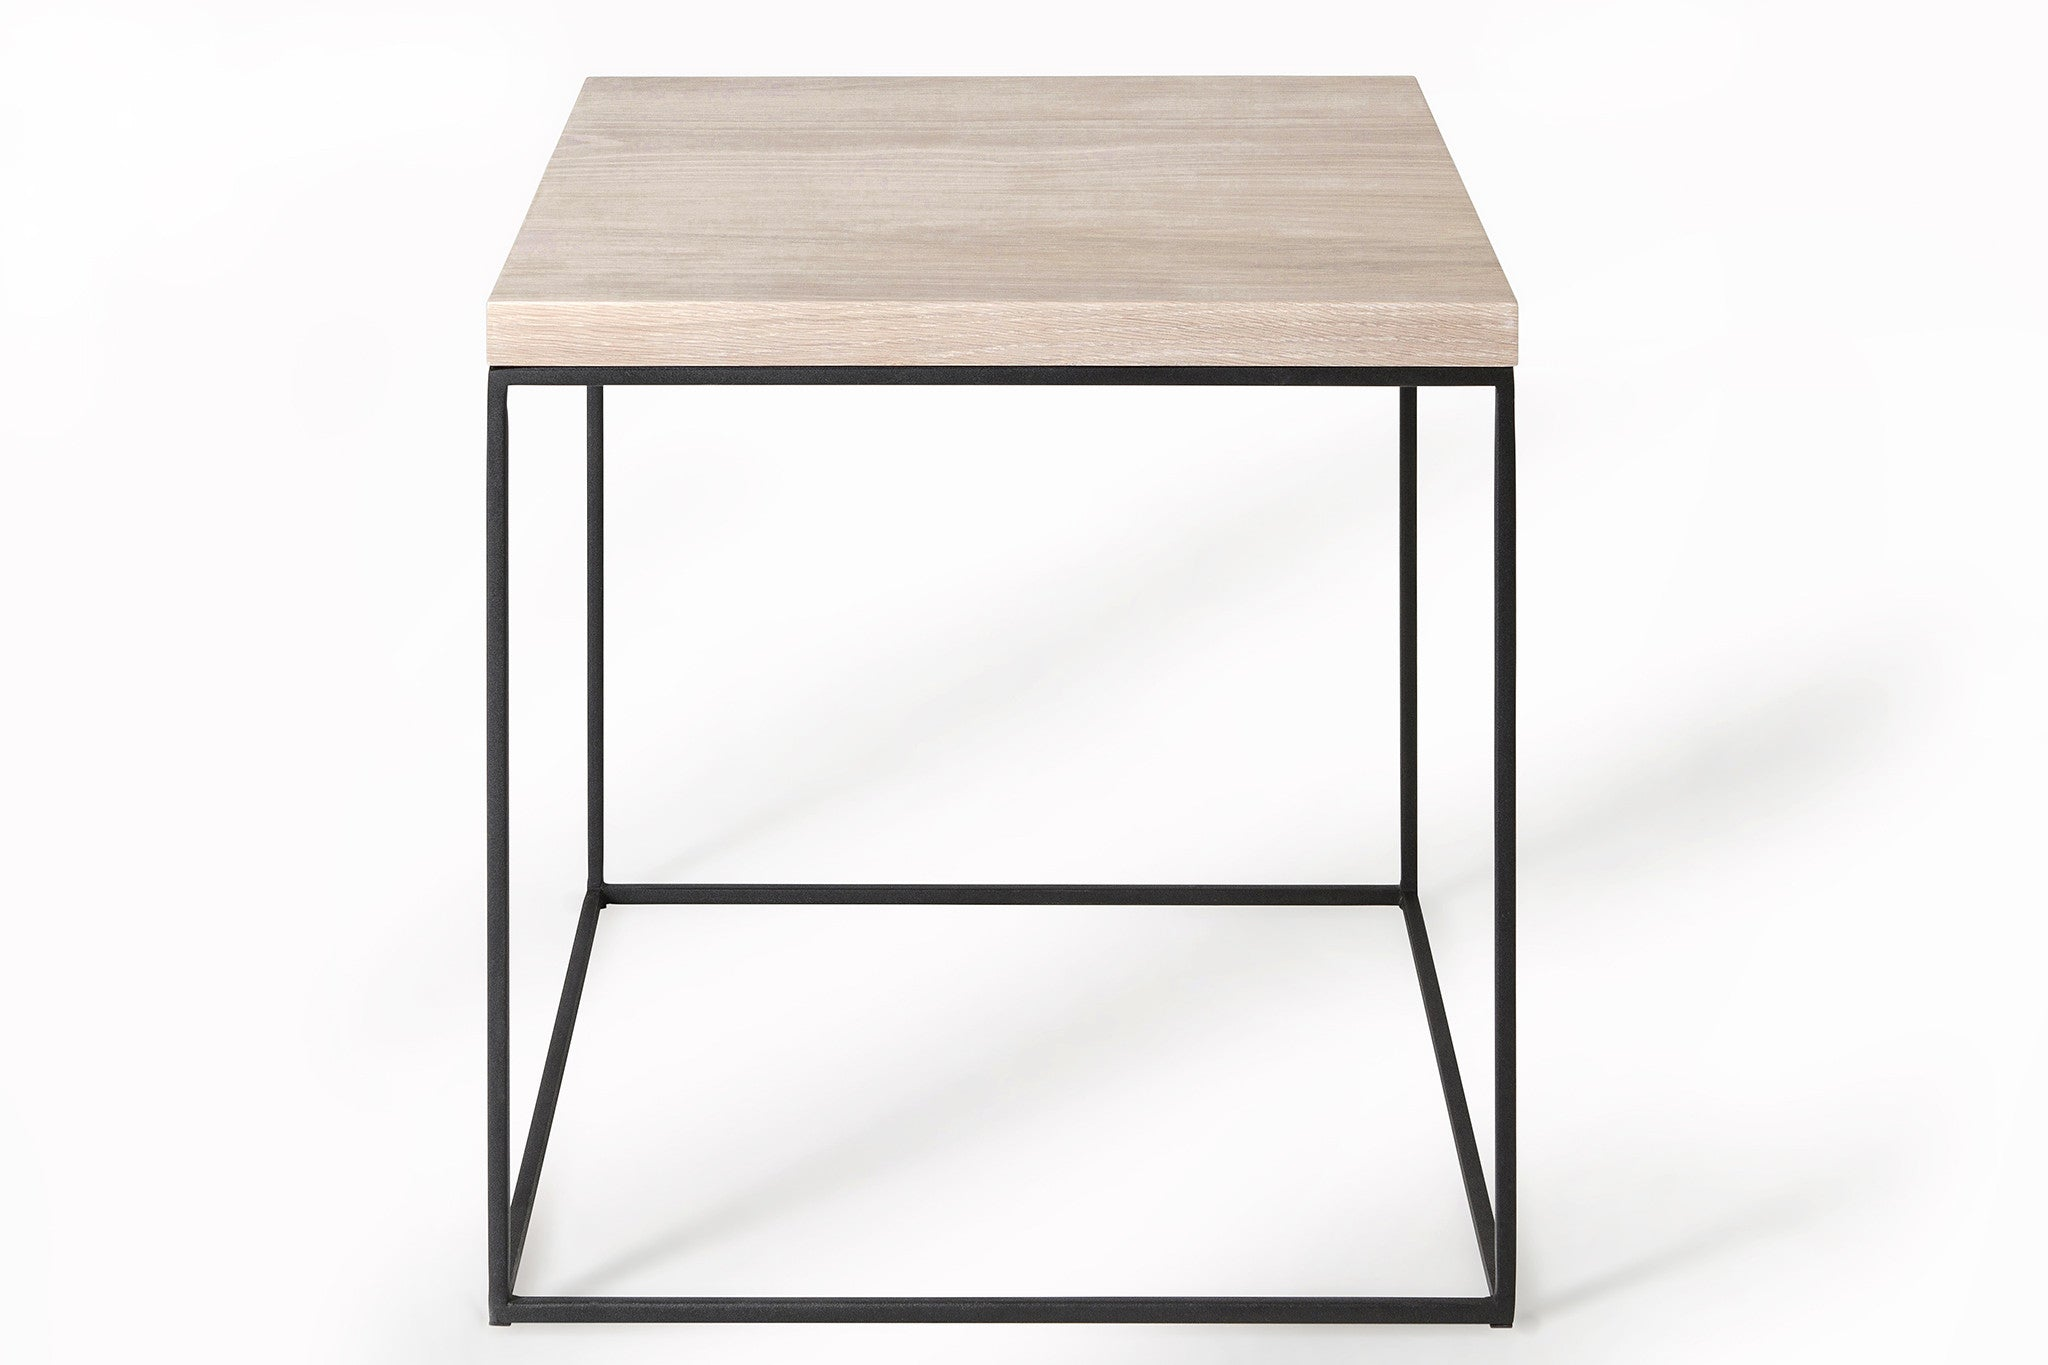 Mirage Side Table - White Oak